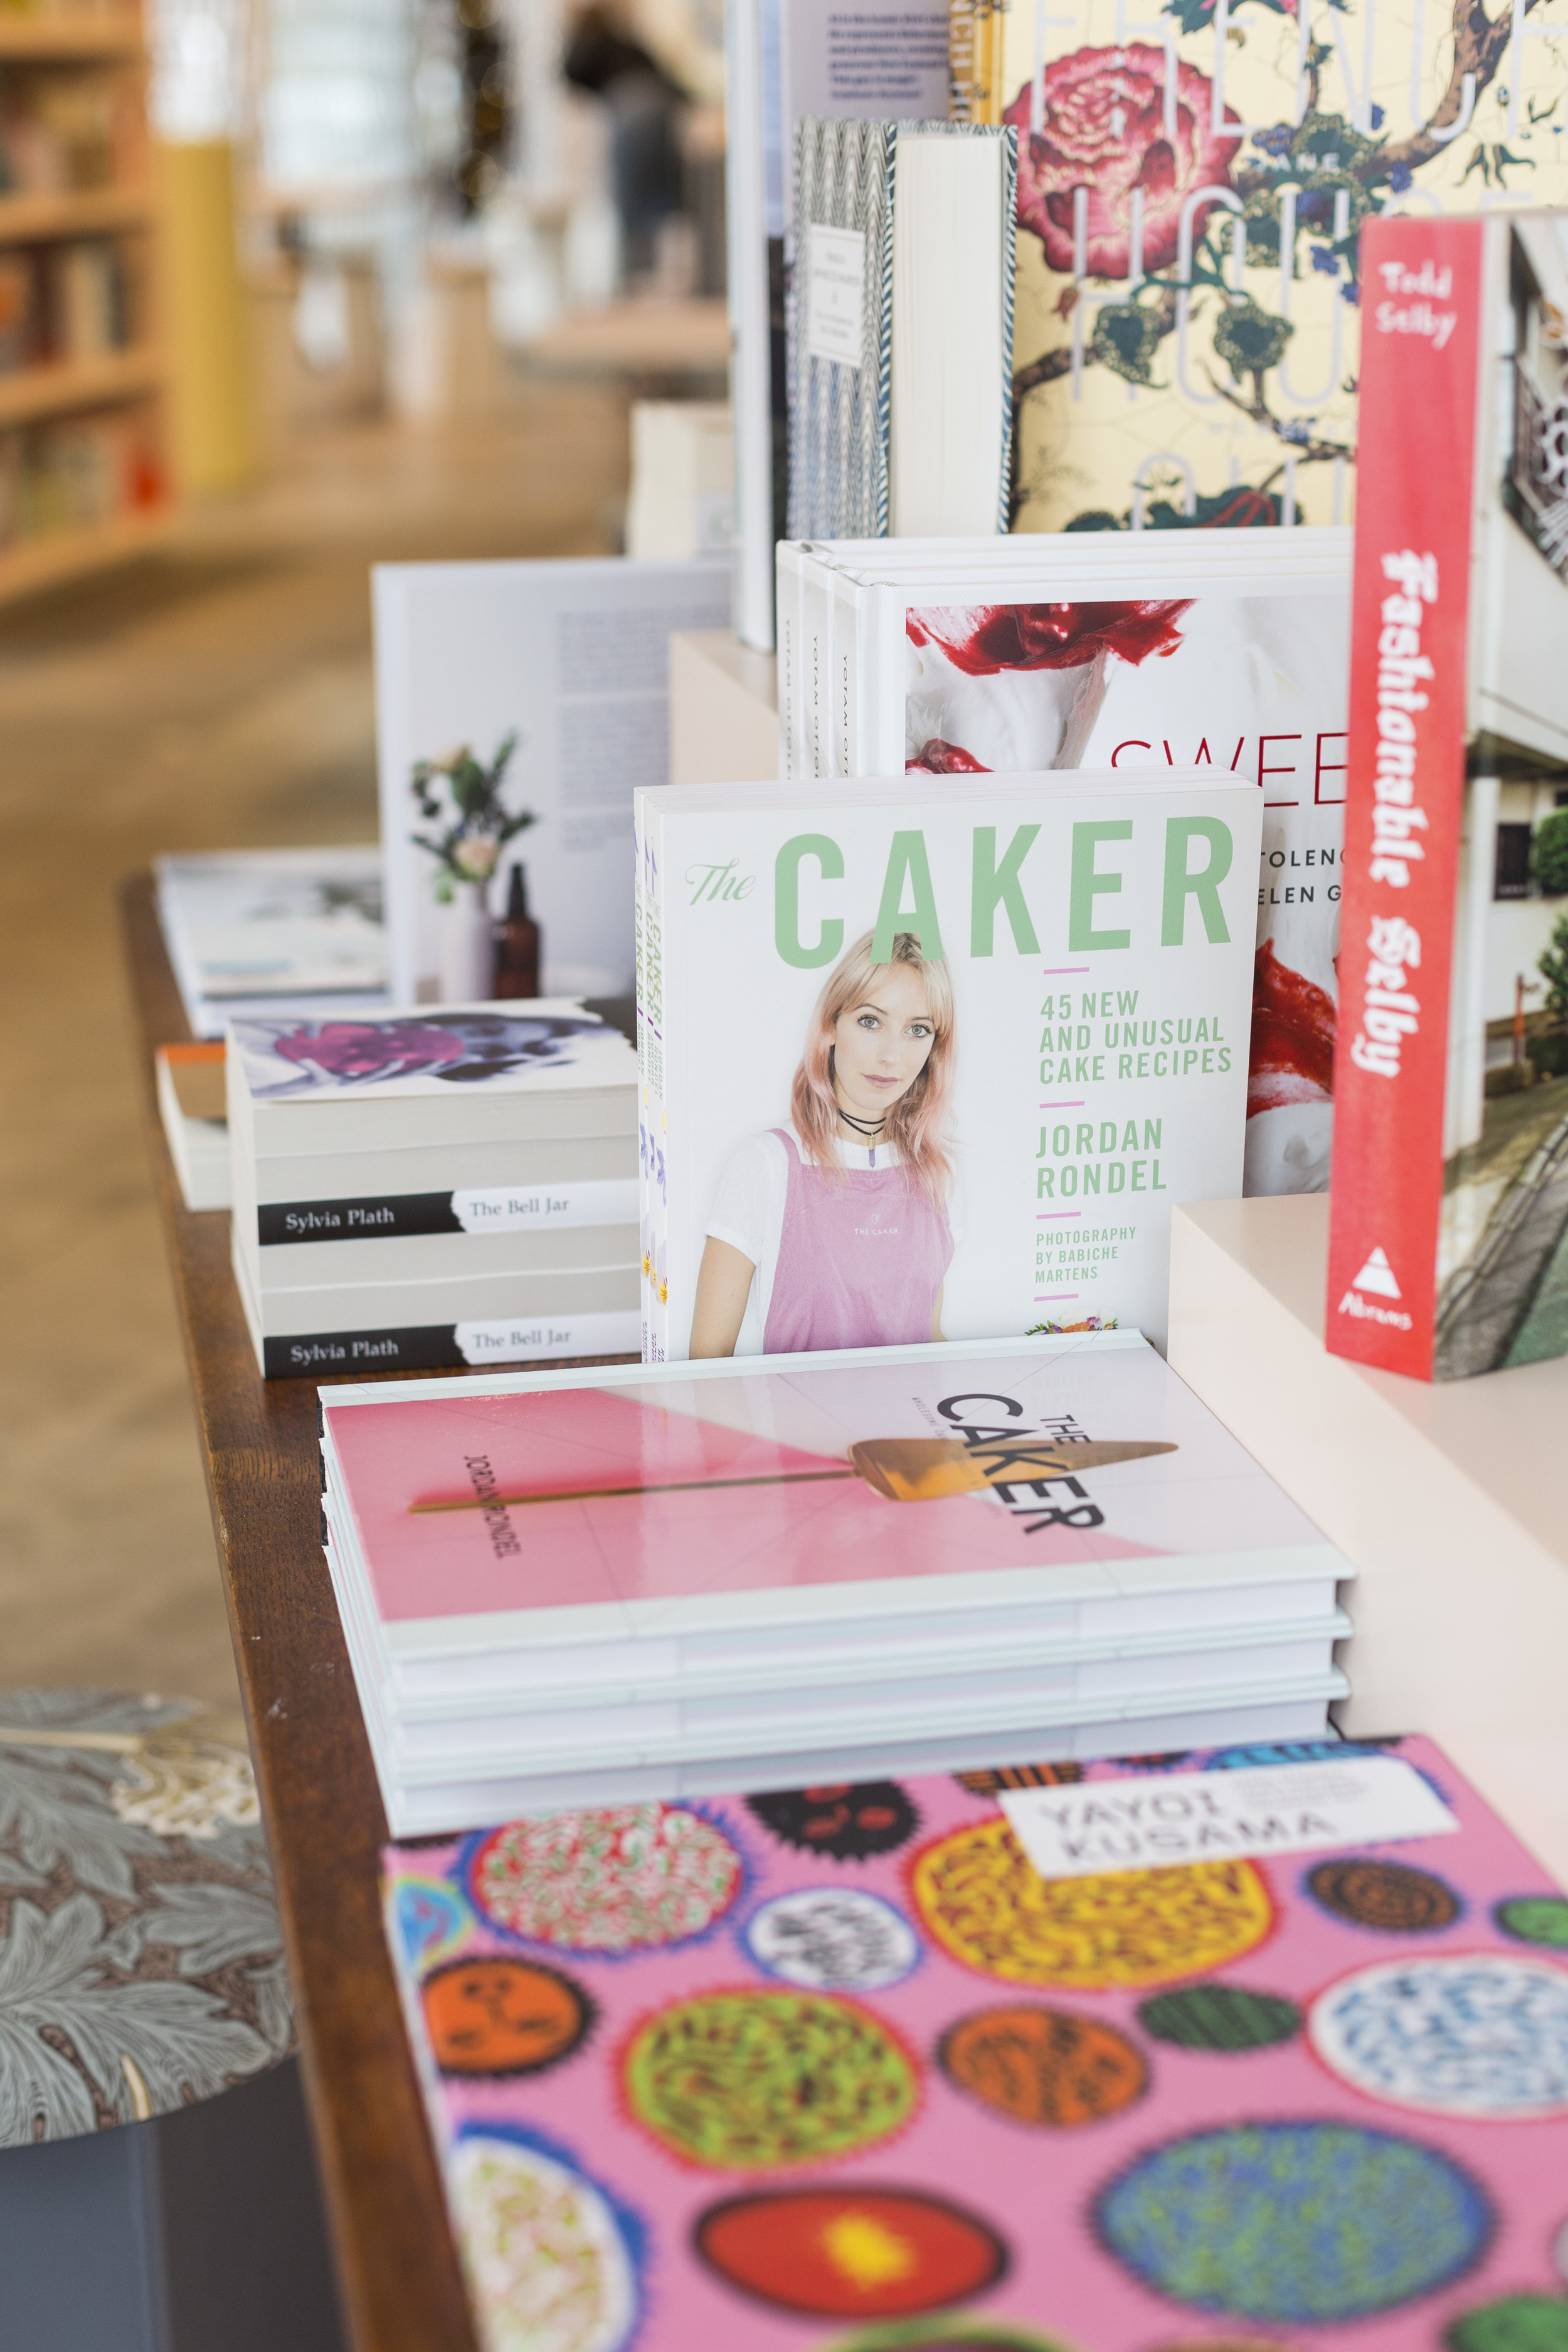 Hedley's Books has hand-picked 100 titles to stock, including both of my recipe books!